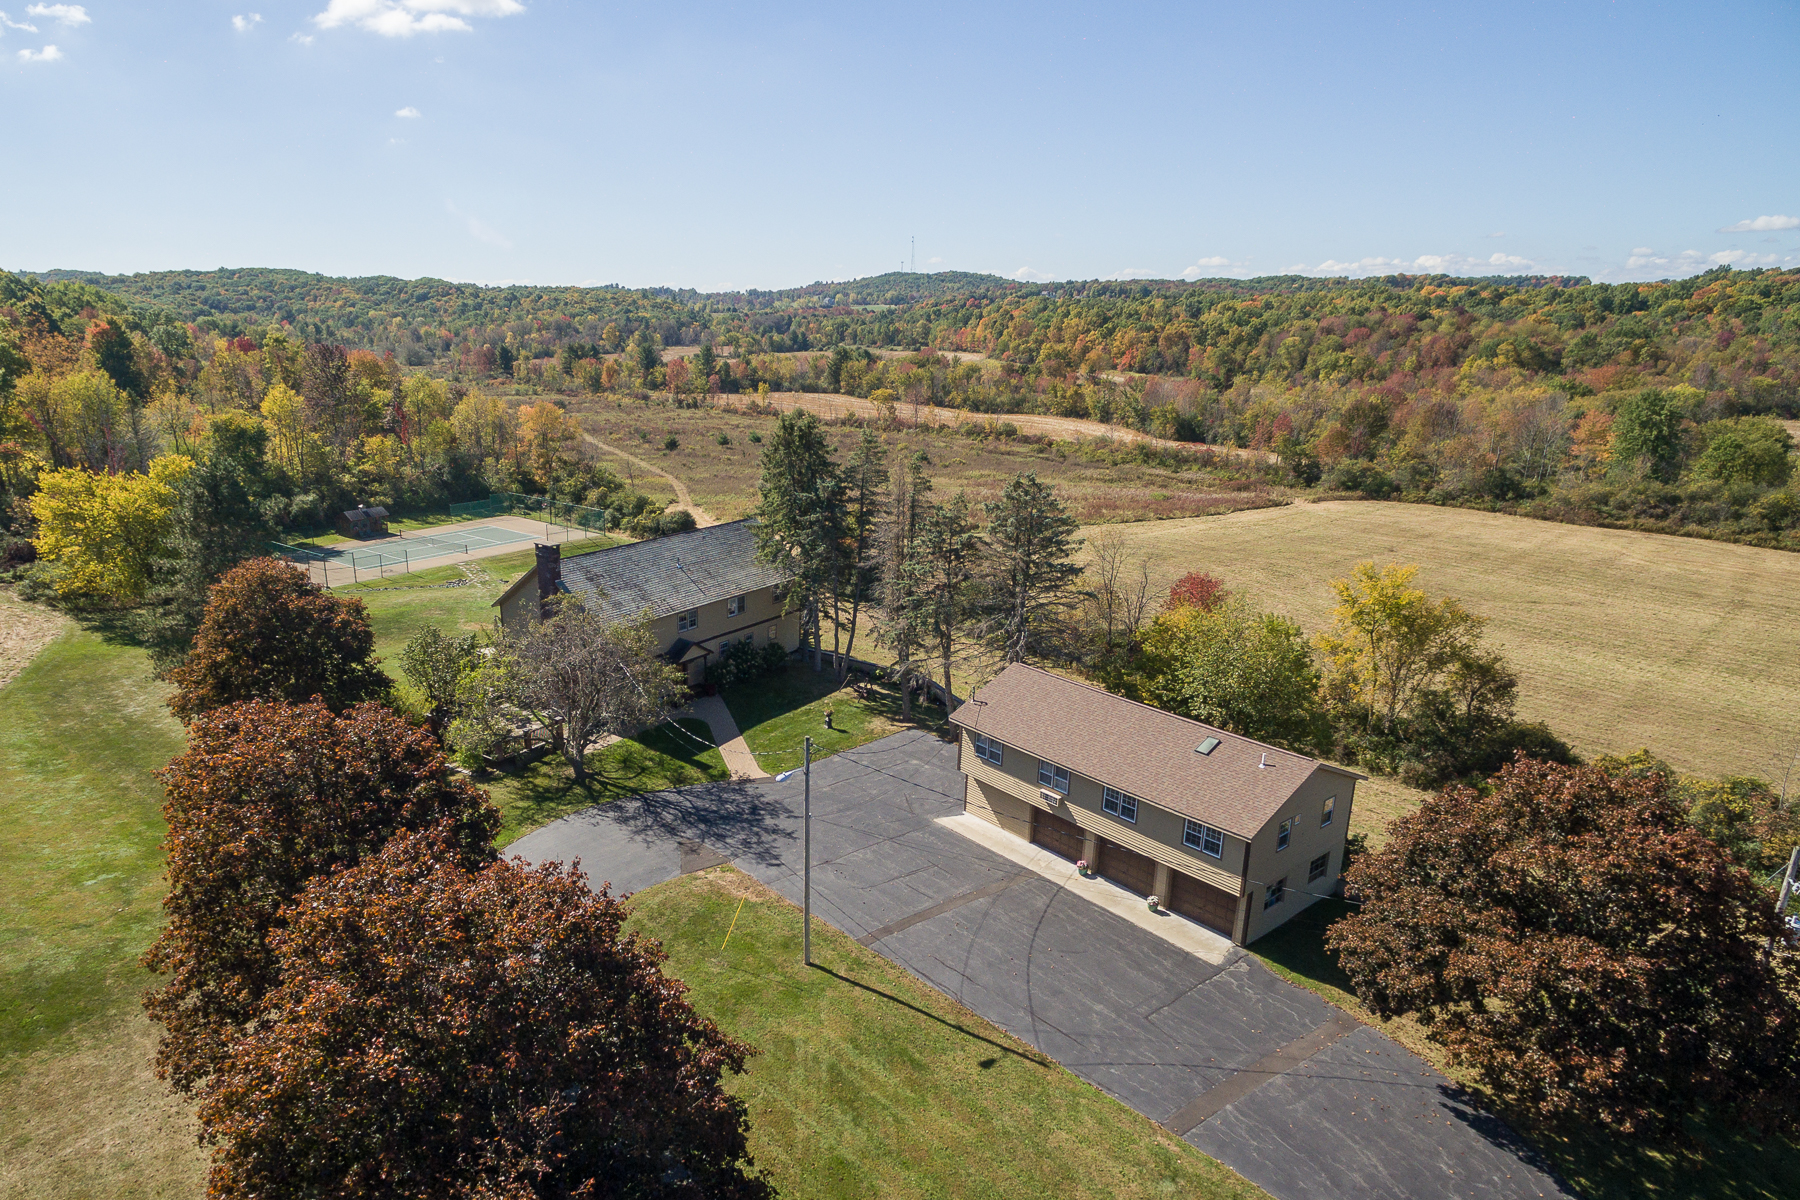 Single Family Home for Sale at Custom Home on 67 Acres in Stillwater 411 Cedar Bluff Rd Stillwater, 12170 United States